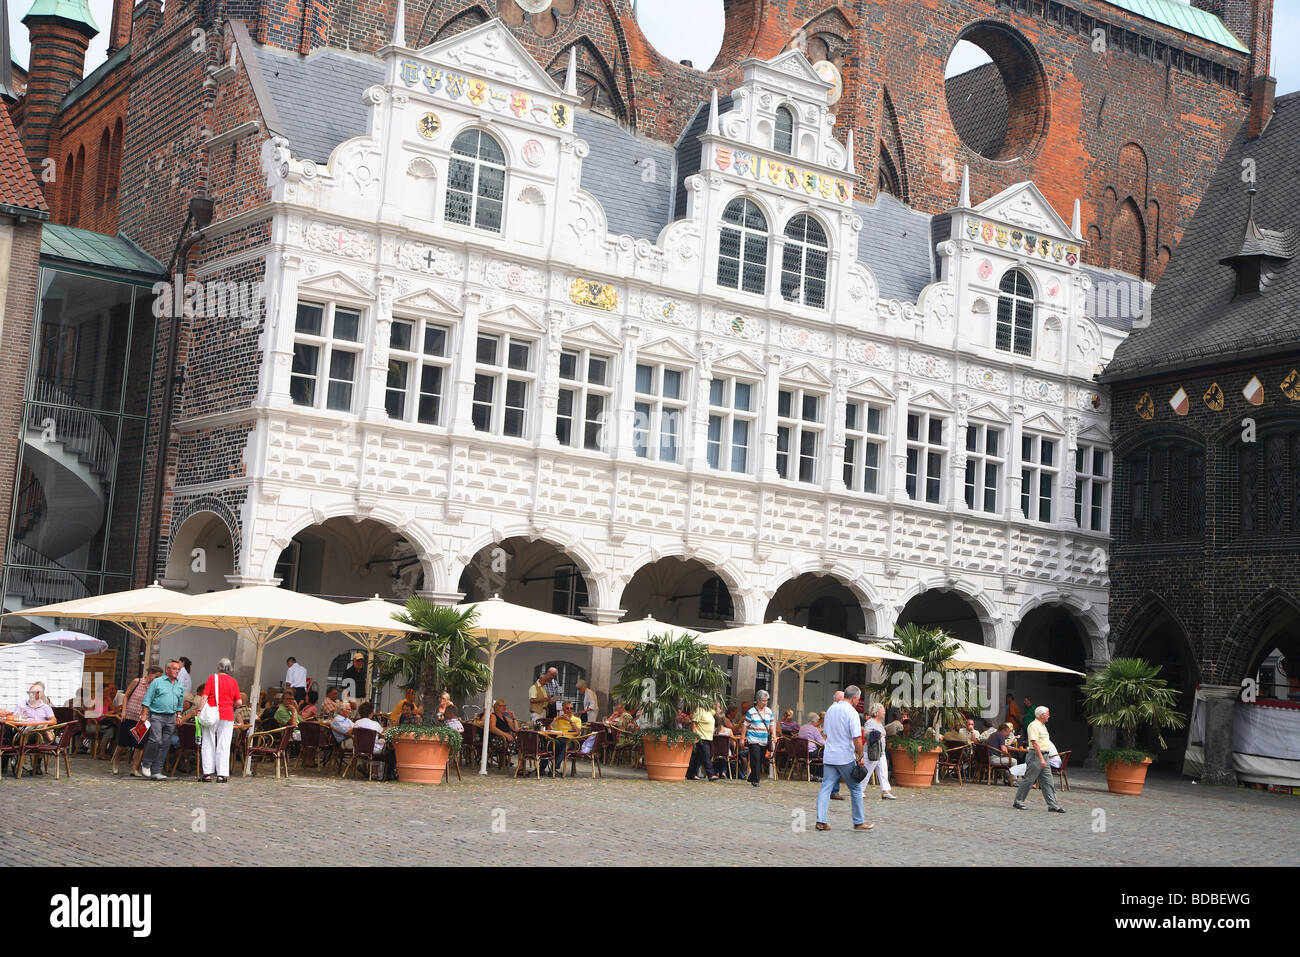 germany l beck lubeck rathaus marktplatz stockfotos germany l beck lubeck rathaus marktplatz. Black Bedroom Furniture Sets. Home Design Ideas